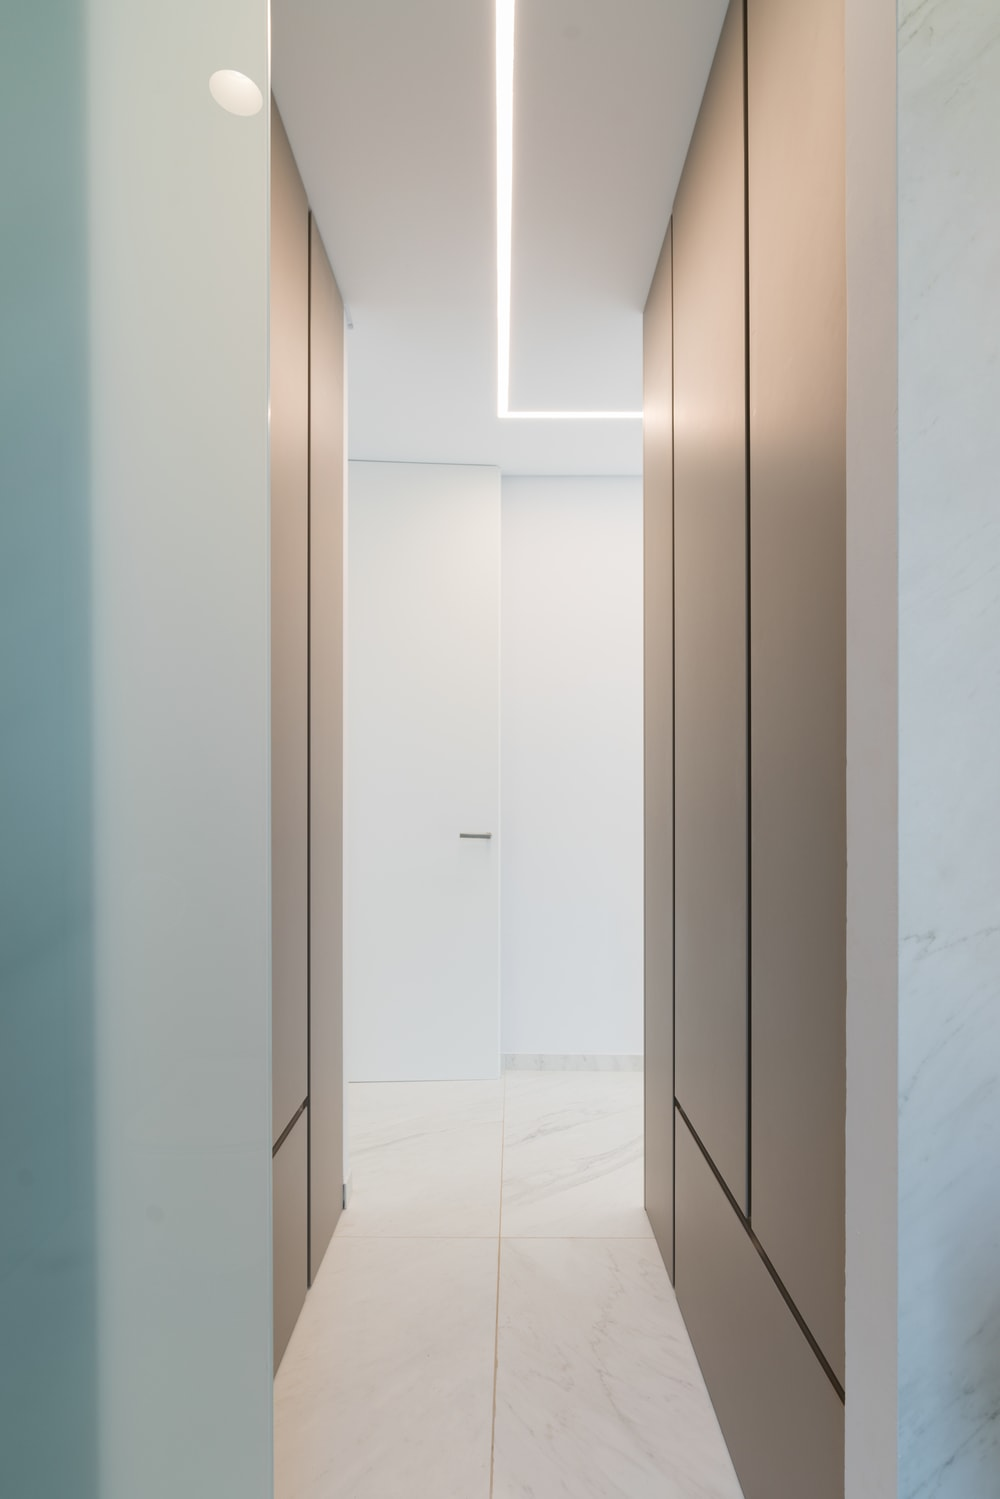 This is a part of the large closet with a couple of modern structures built into the walls of this narrow area.